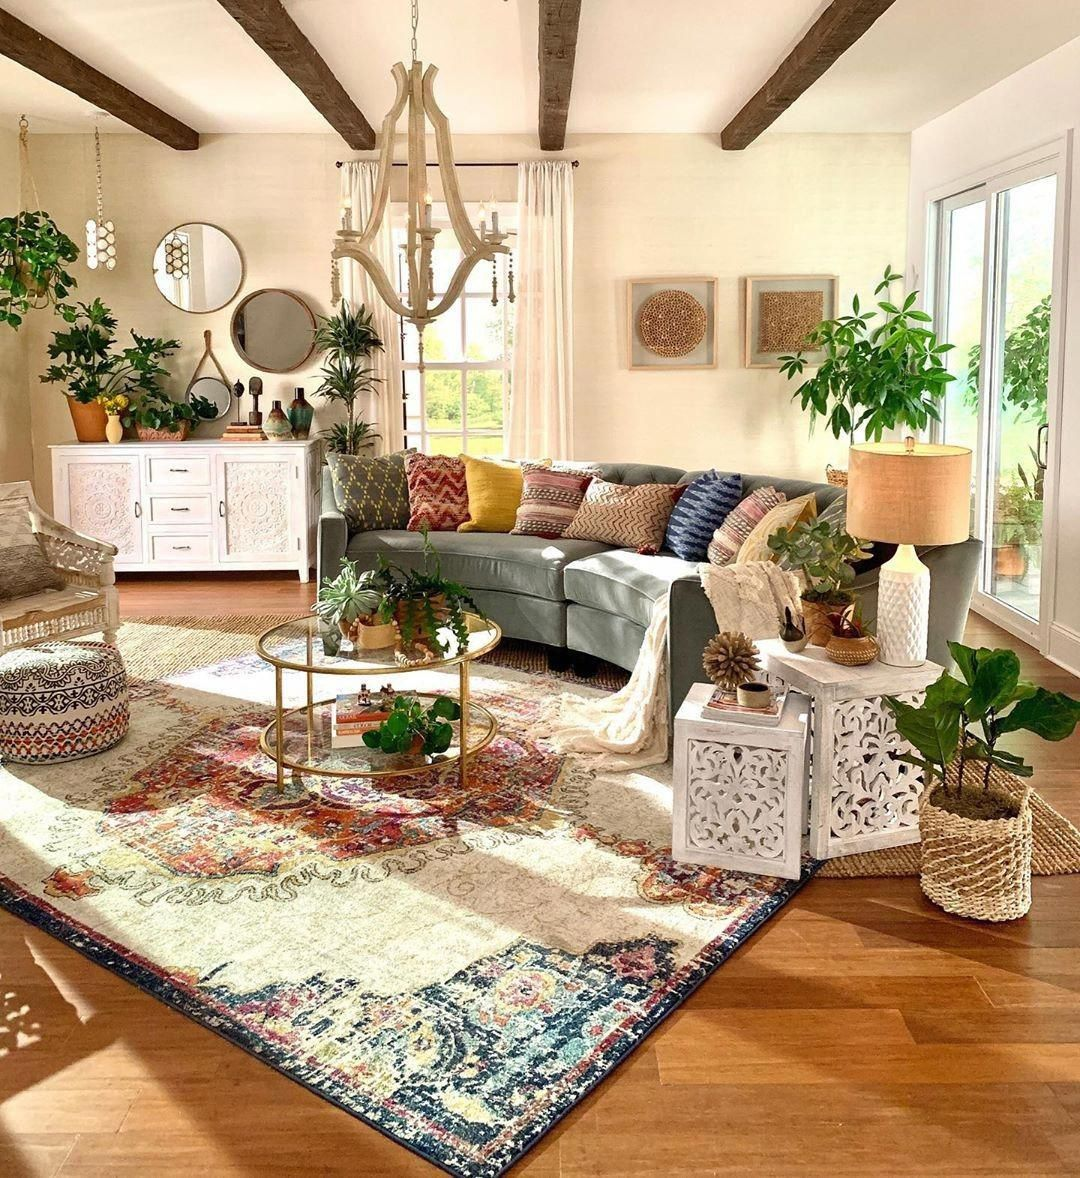 urban bohemian decor #BohemianStyleHomeDécorTips  Home living